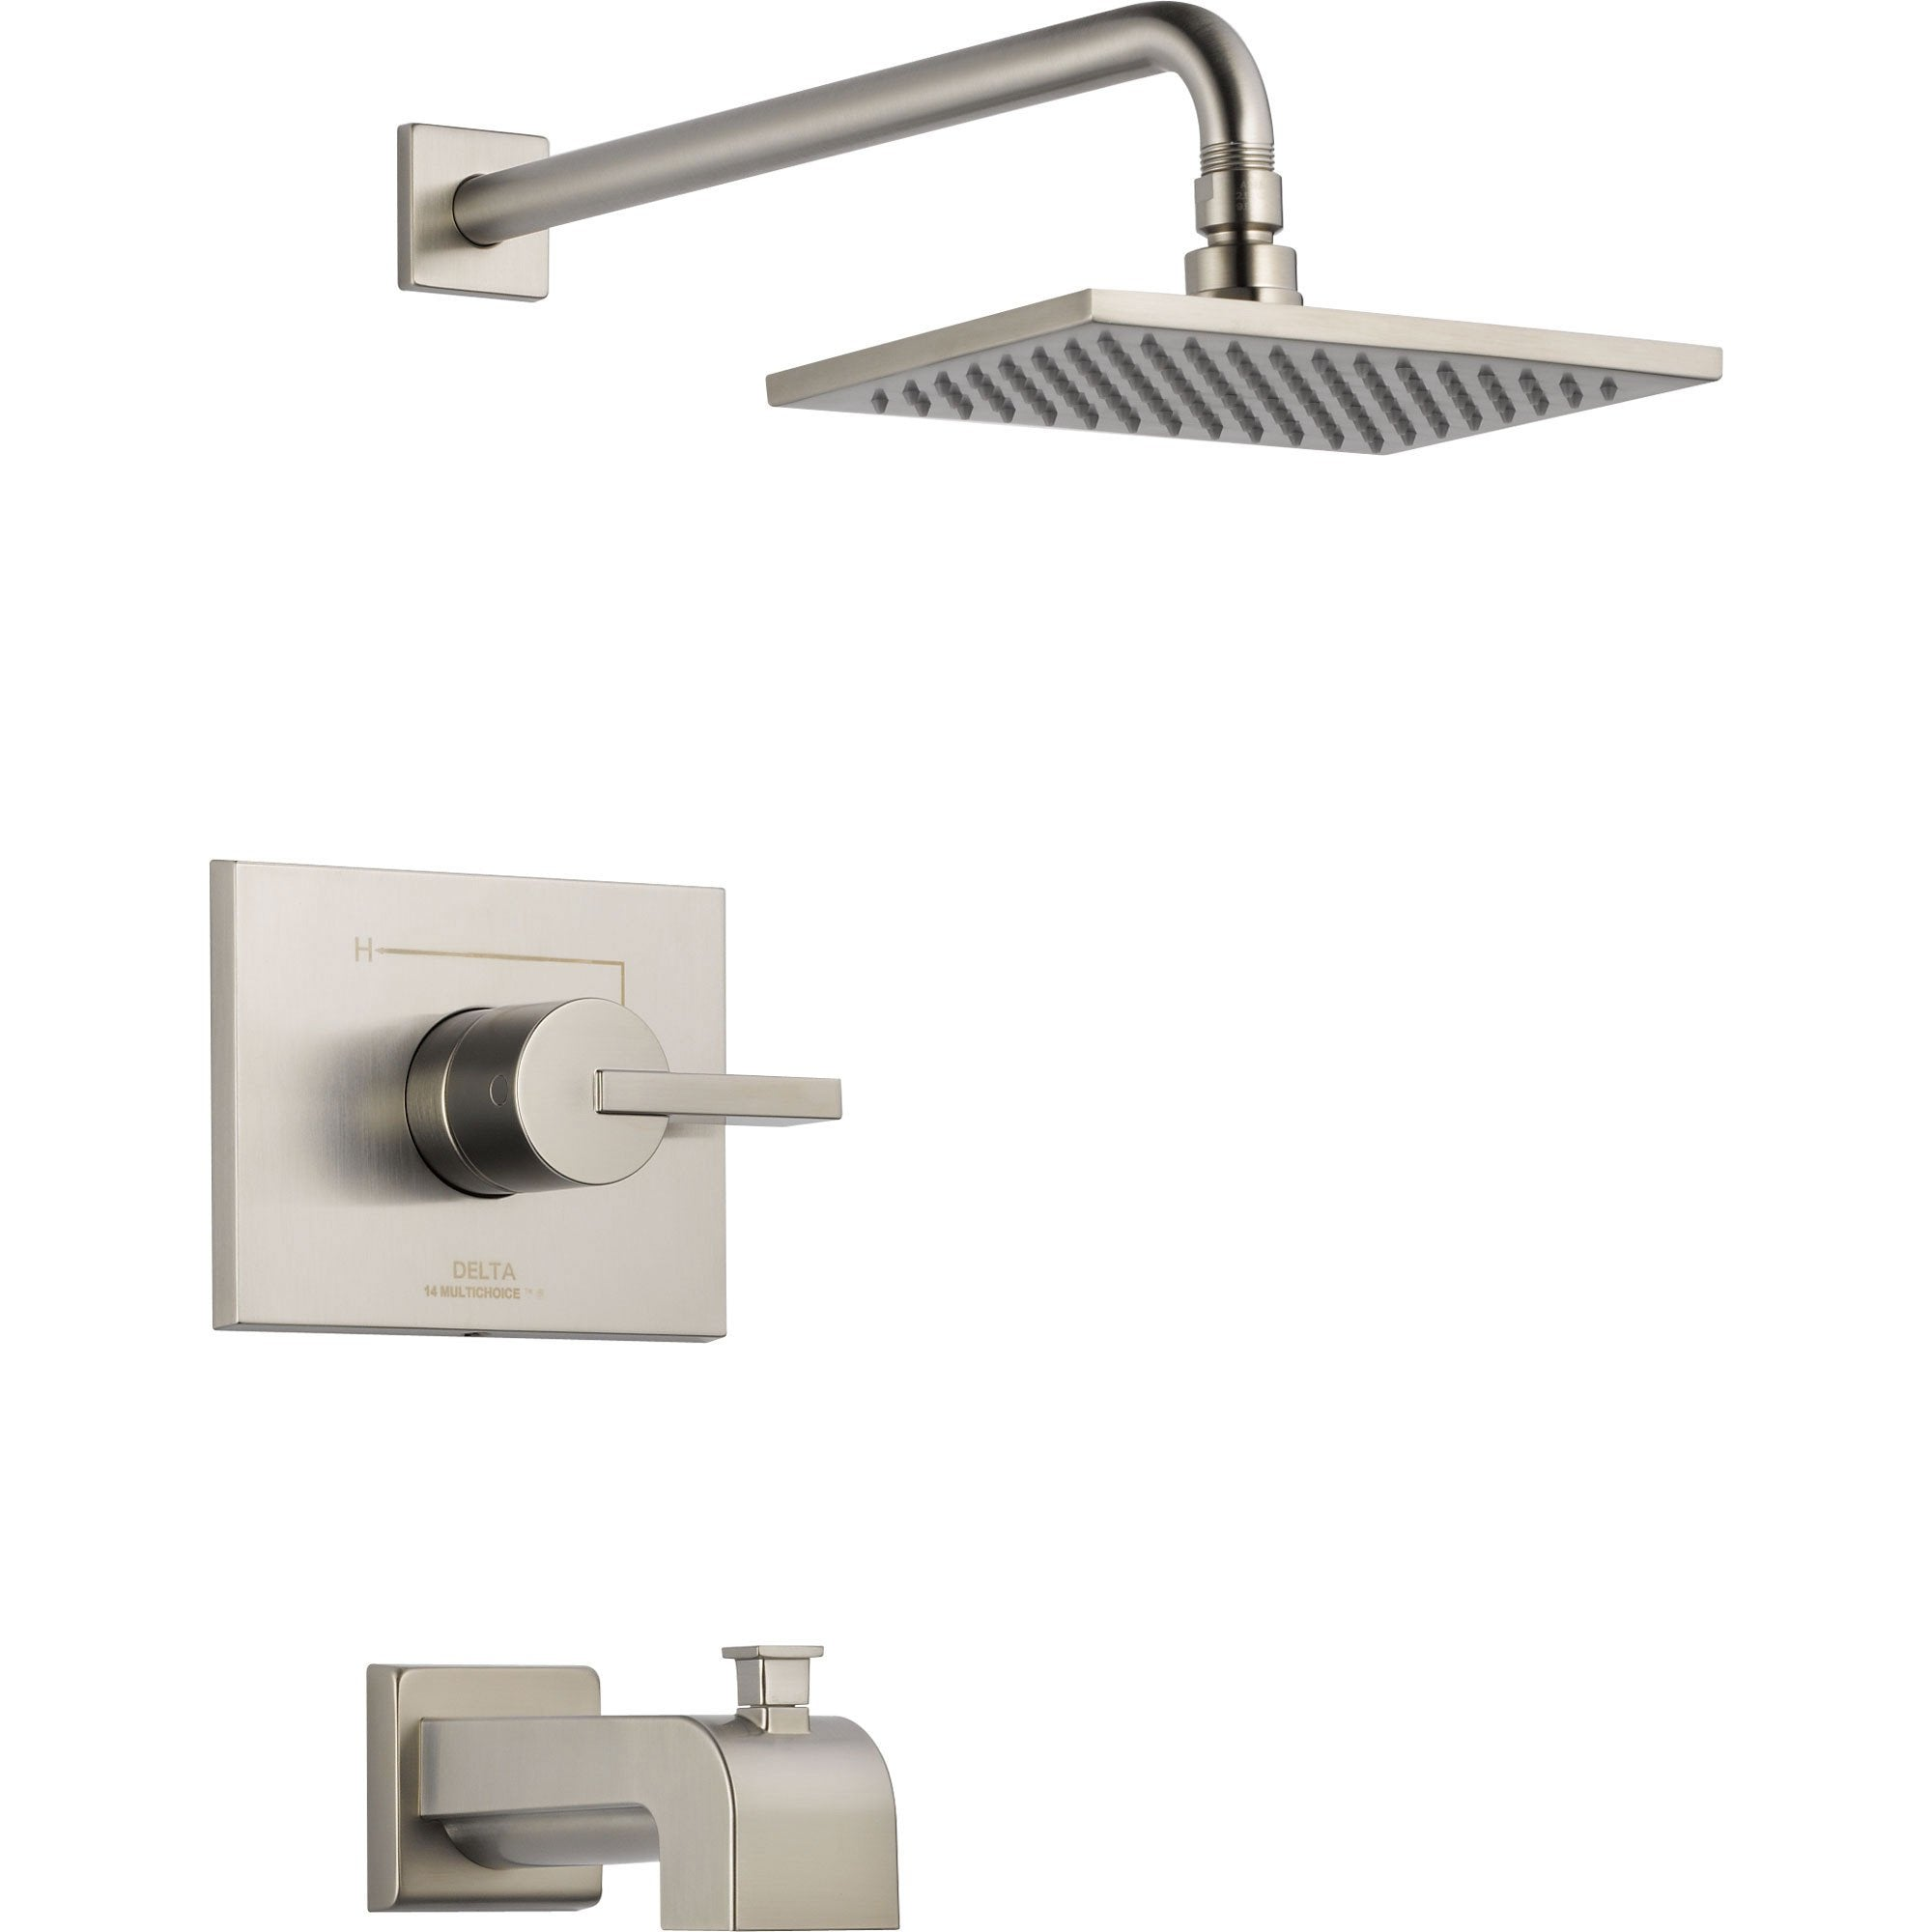 Delta Vero Stainless Steel Finish Tub and Shower Combination Faucet Trim 521927